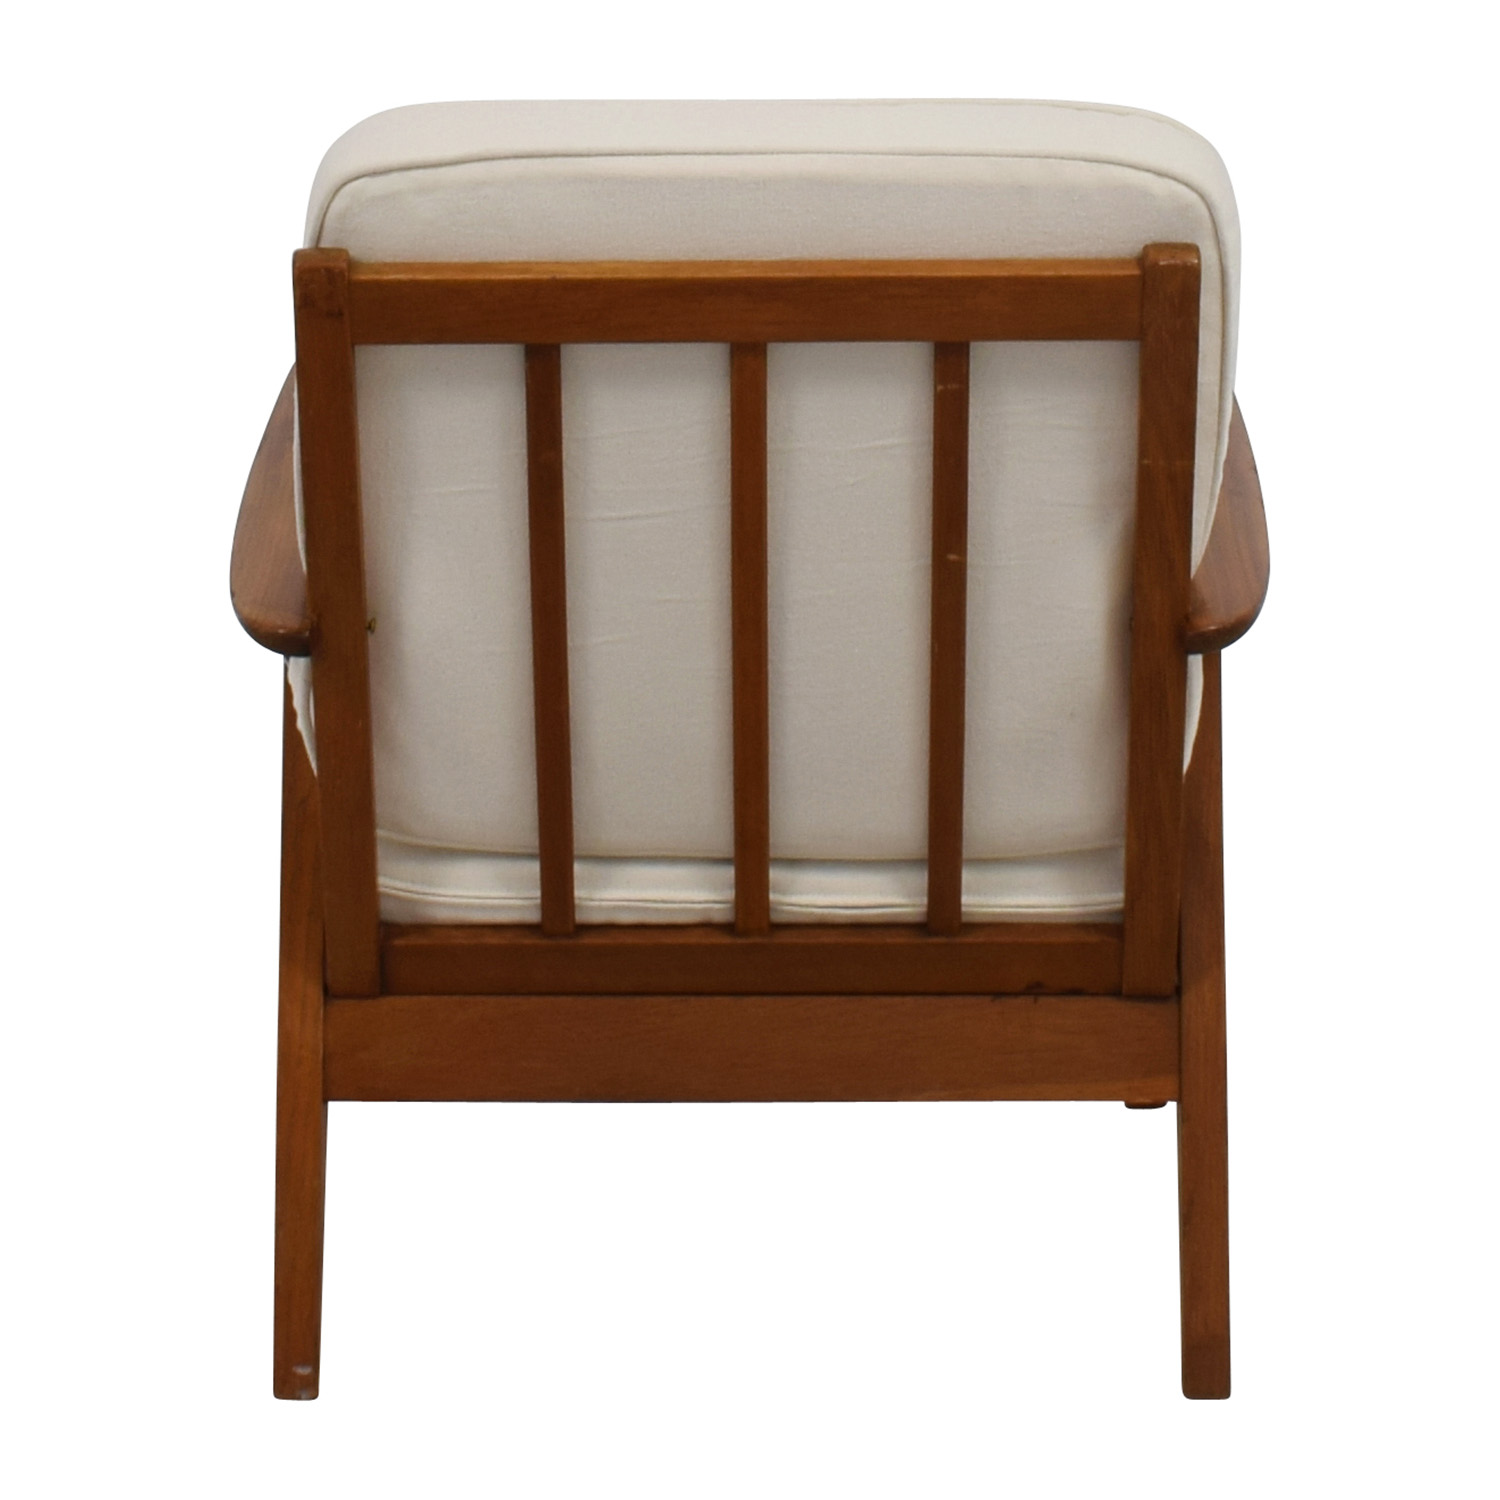 shop Danish Mid-Century Arm Chair online